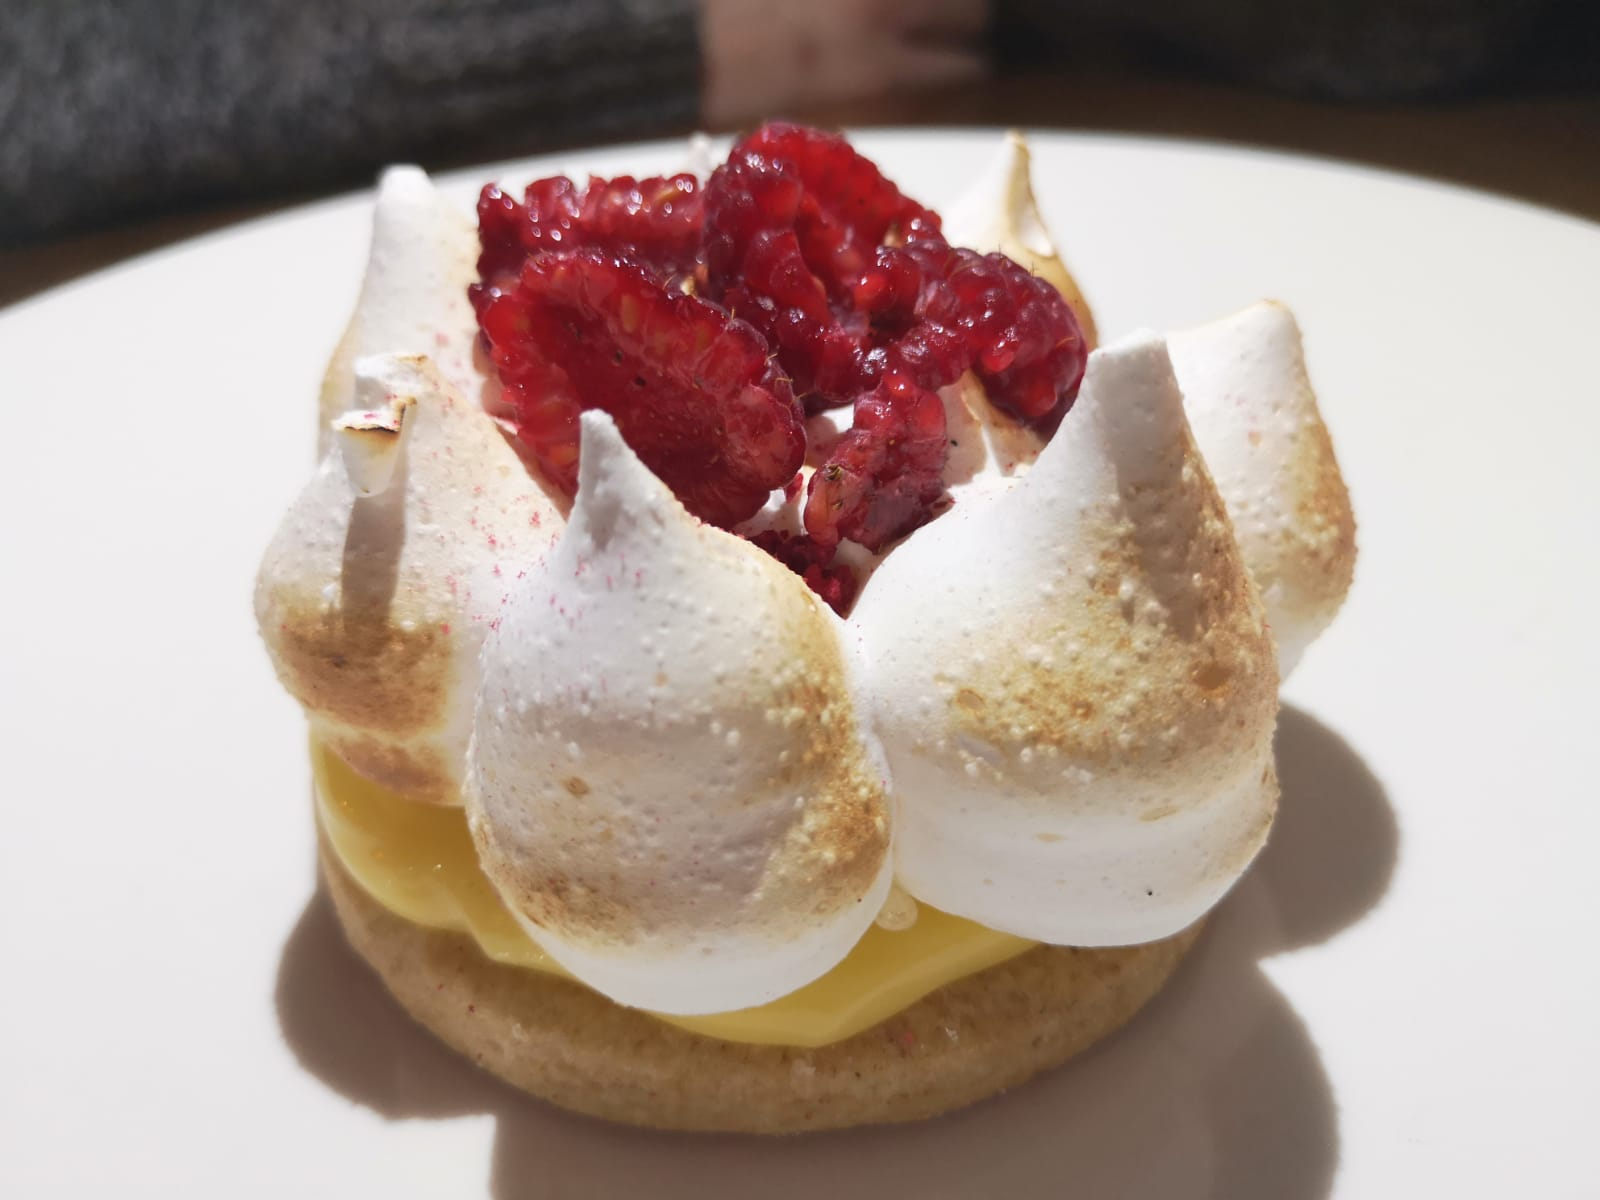 Lemon Meringue in Hartes of Kildate